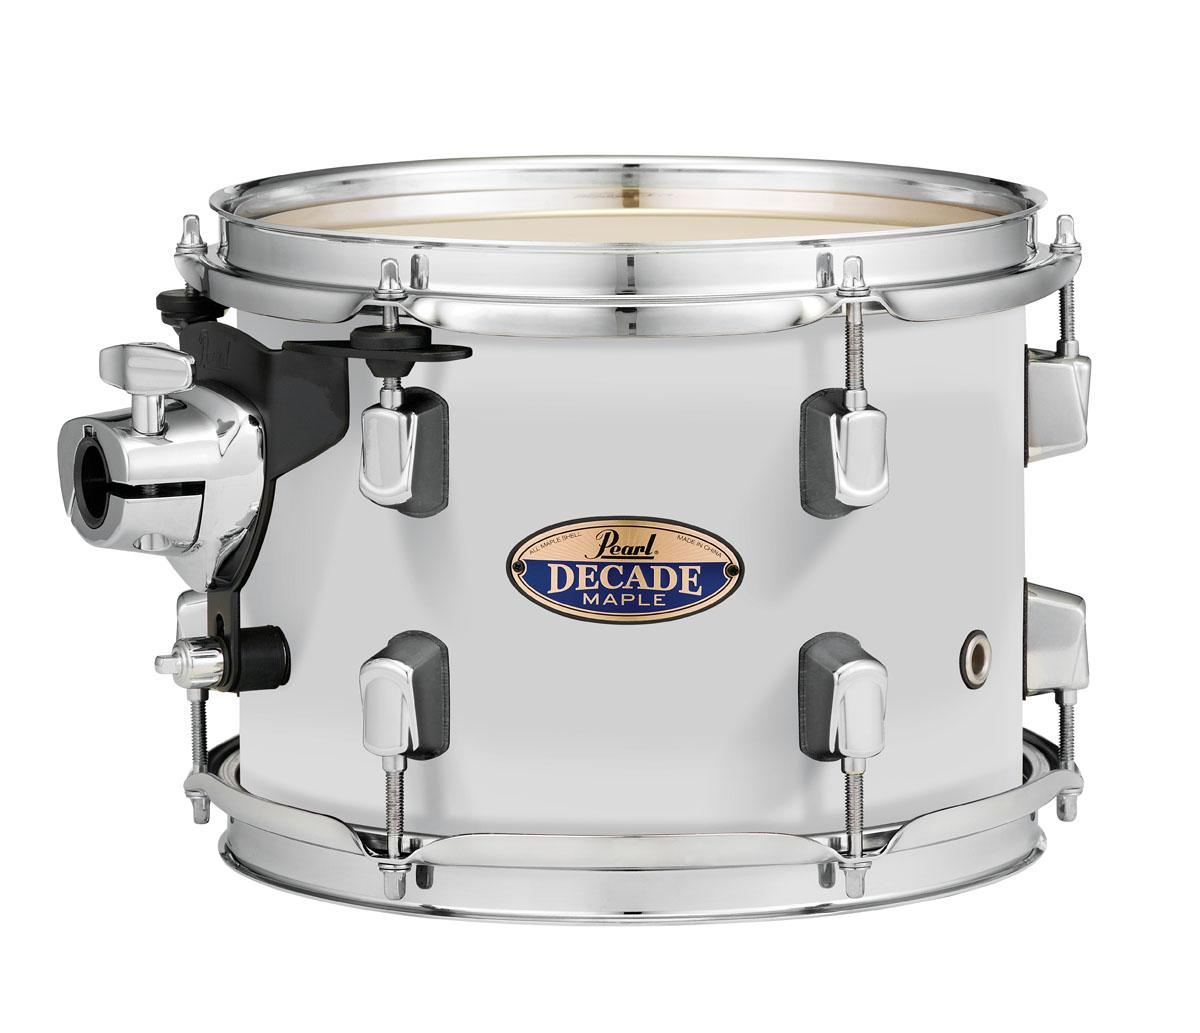 Pearl Decade Maple 10x7 Tom W/OPL White Satin Pearl